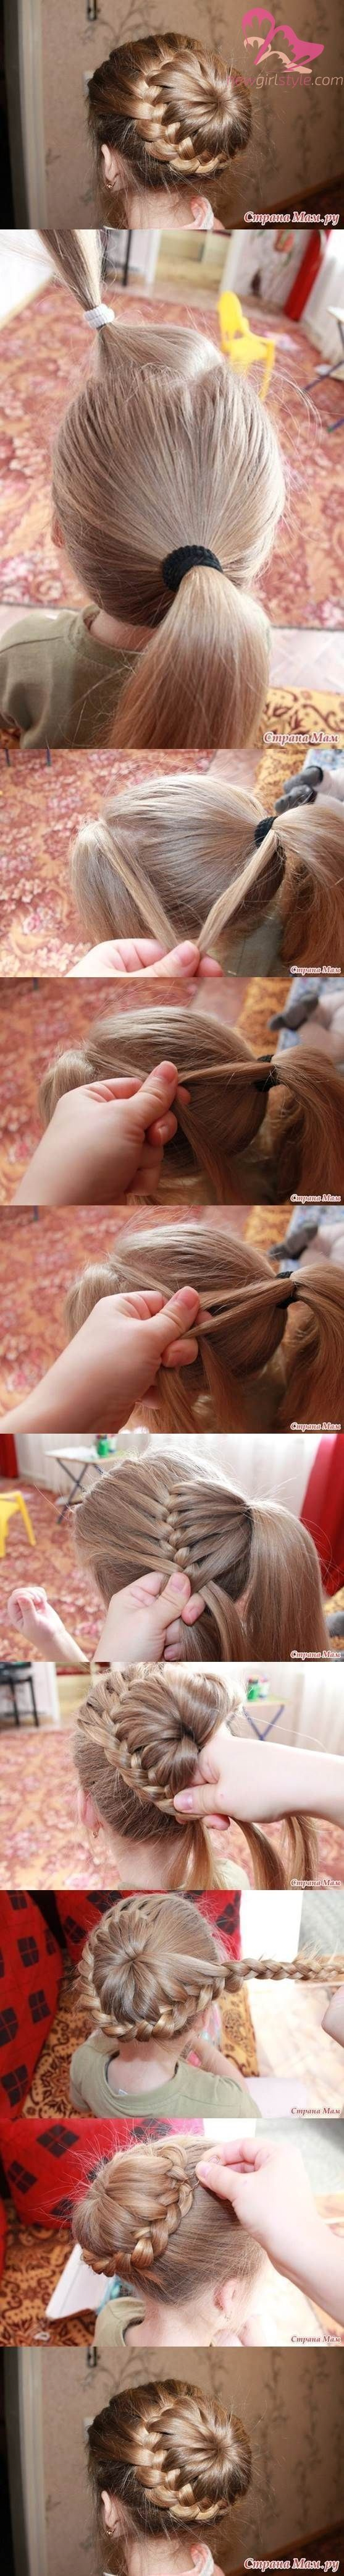 +60 Gorgeous Hairstyles For That First School Day Impression #firstdayofschoolhairstyles